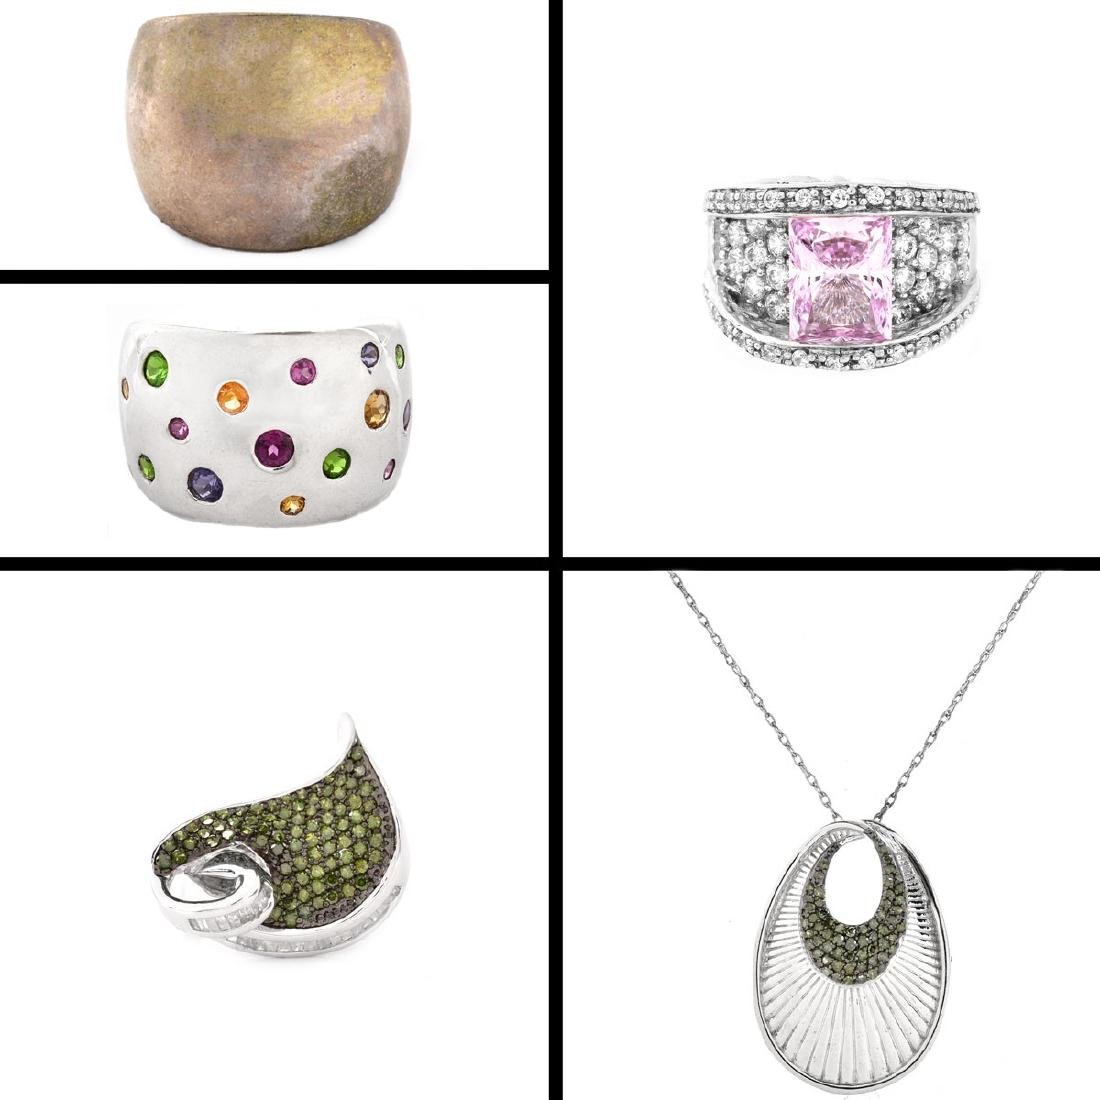 5 Pieces Sterling Silver Fashion Jewelry